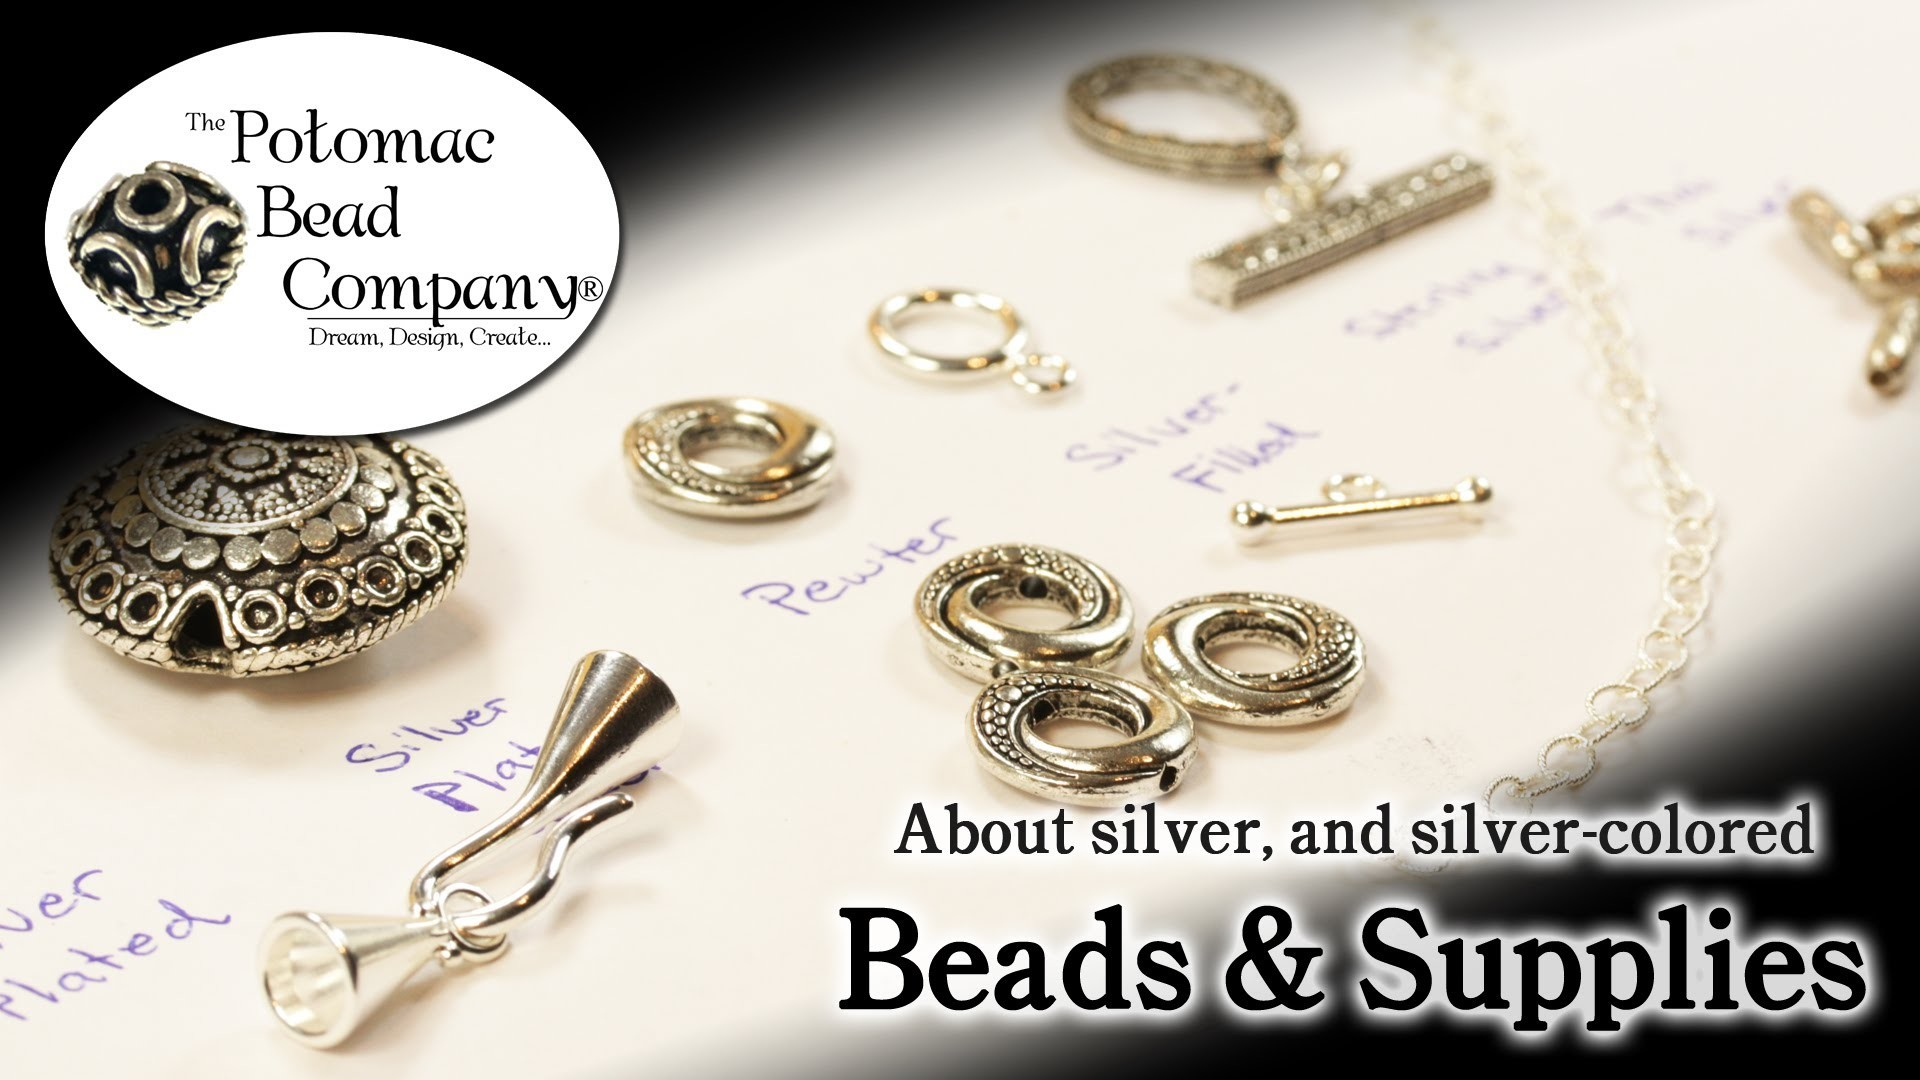 About Silver & Silver Colored Beads and Findings